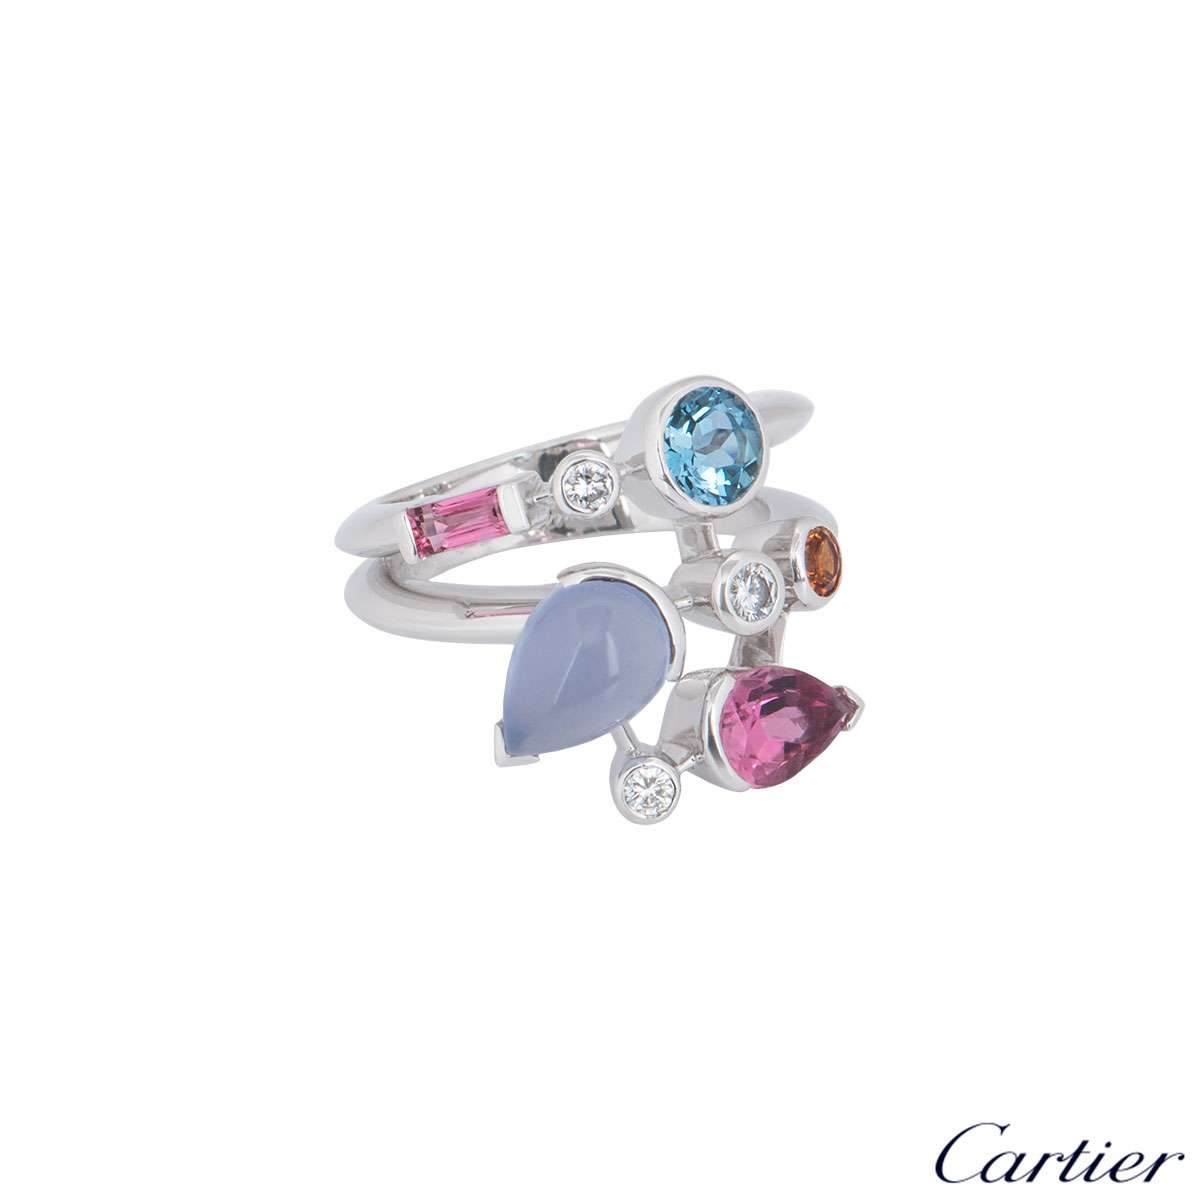 Cartier Platinum Meli Melo Ring